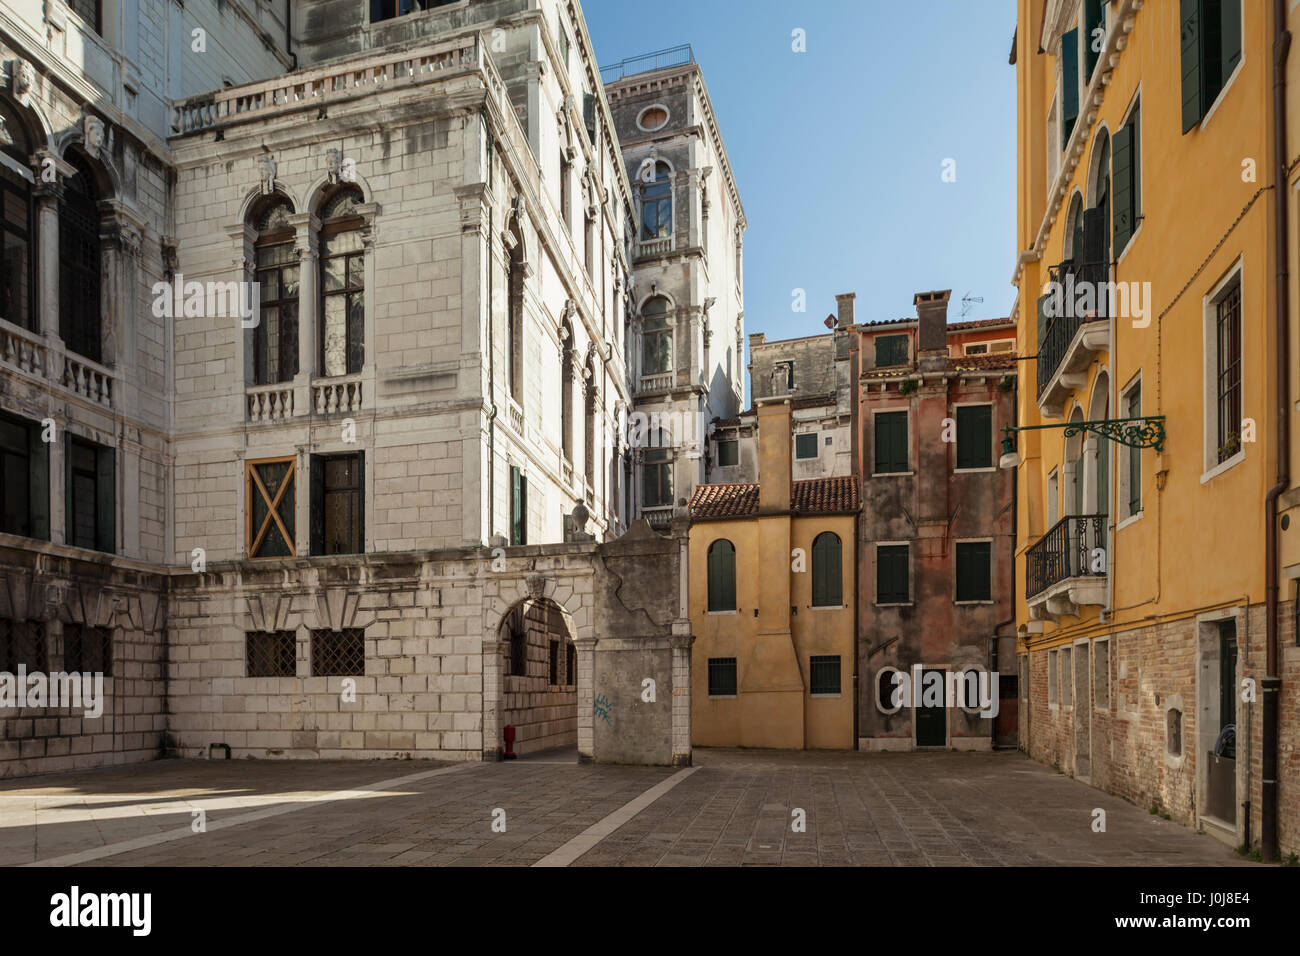 Spring afternoon at Conservatorio di musica Benedetto Marcello, sestiere of San Marco, Venice, Italy. - Stock Image